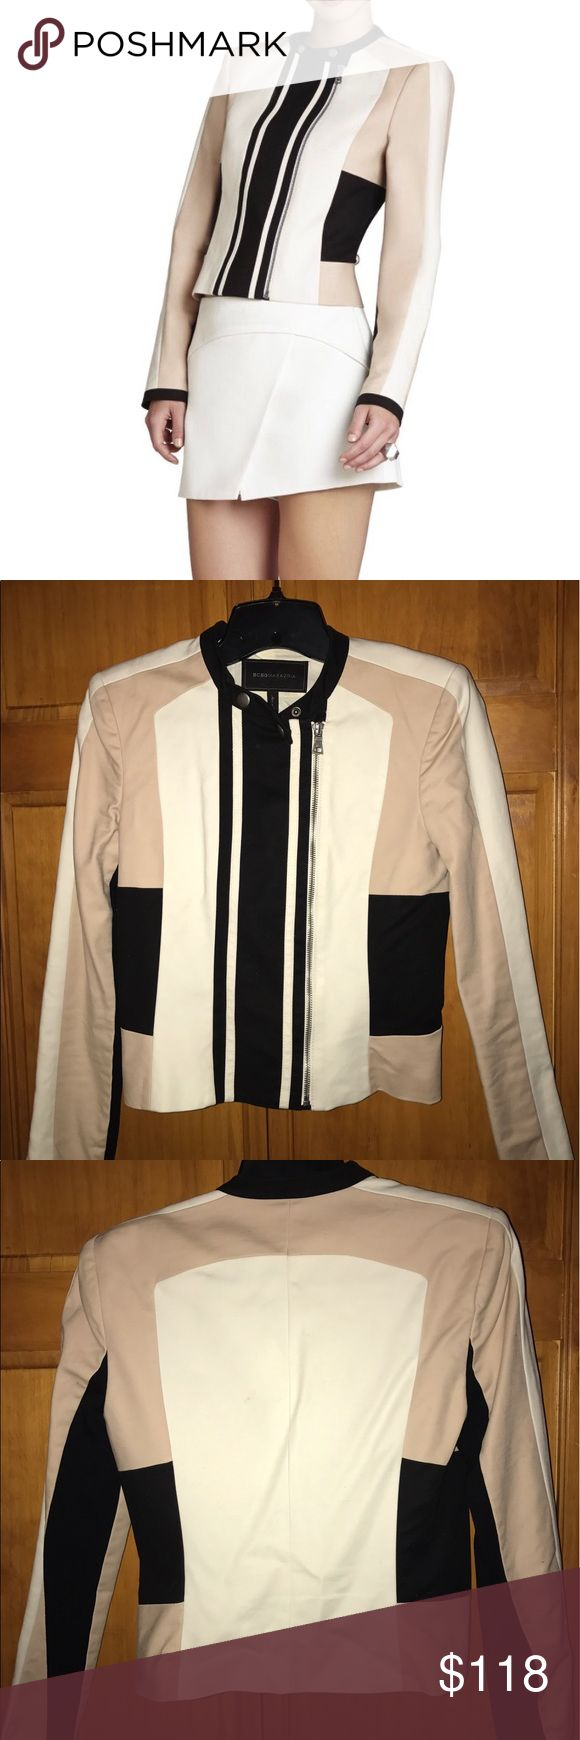 "BCBG Maxazria Moto ""Erin"" Jacket Give your office look a strong, sleek structure with this color-blocked moto jacket. Wear it like a blazer with a twist. For a super chic look wear it over a black knee-length fitted dress. BCBGMaxAzria Jackets & Coats"